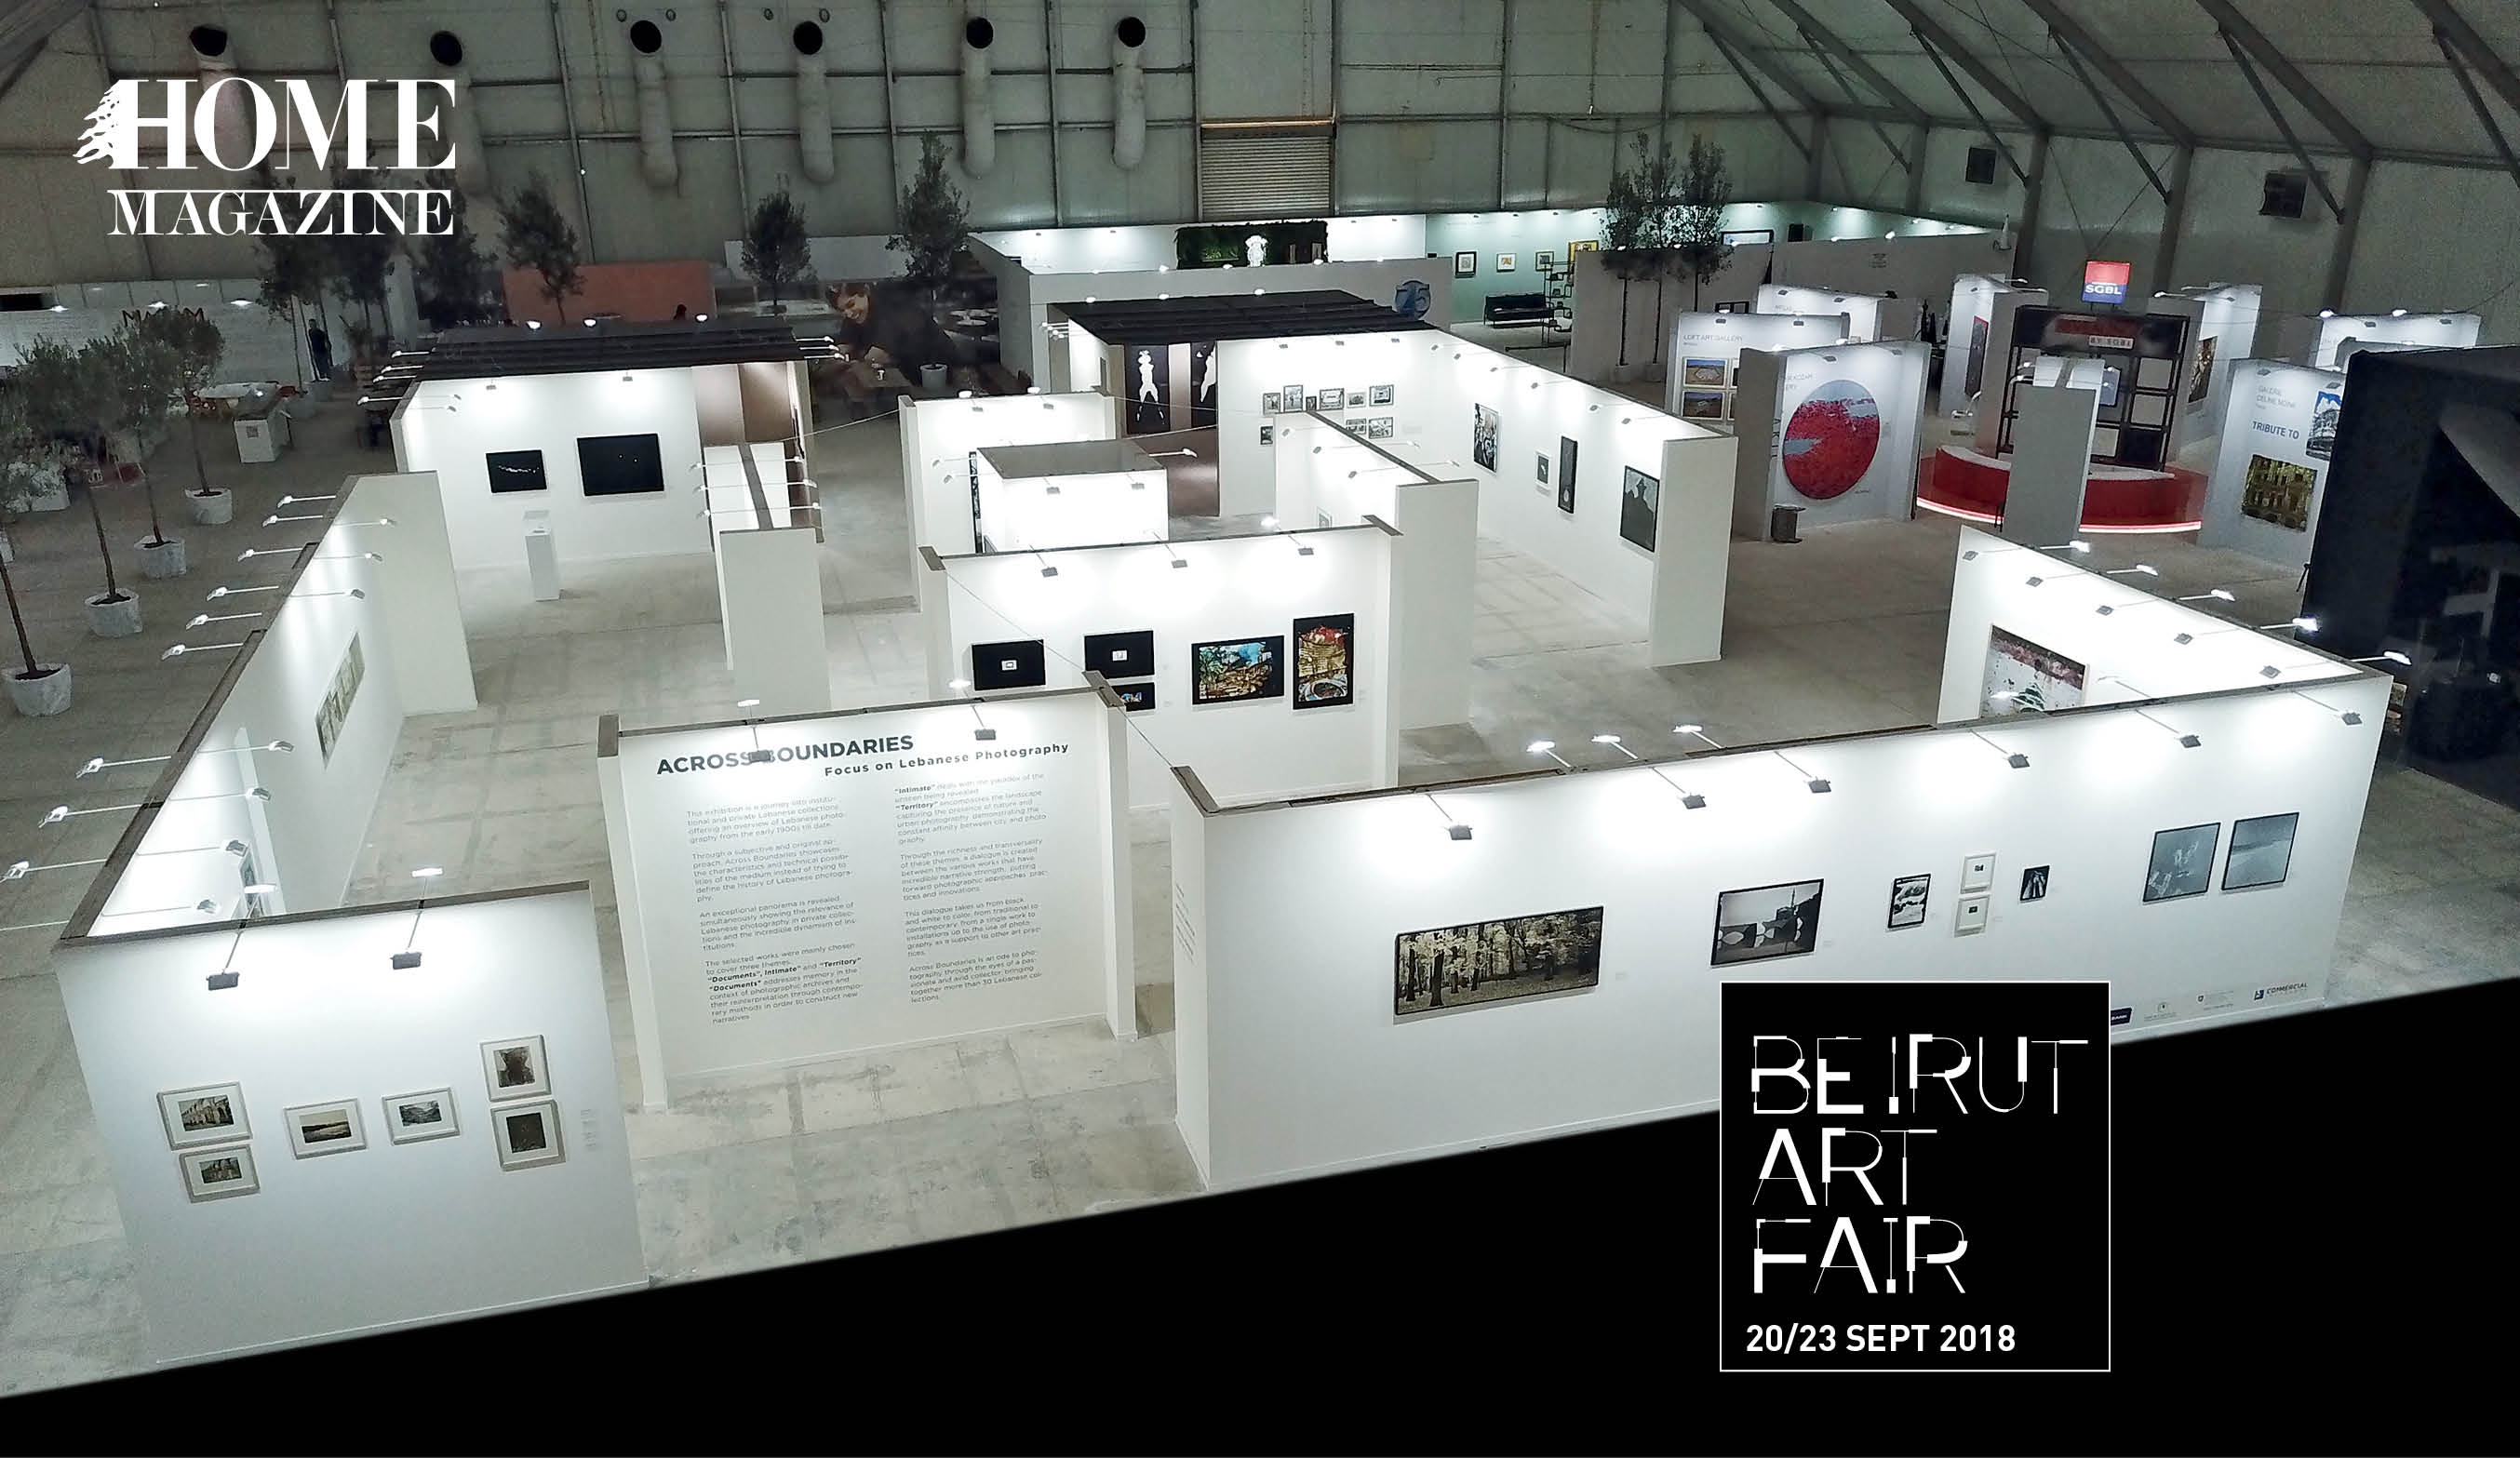 Beirut Art Fair, Across Boundaries